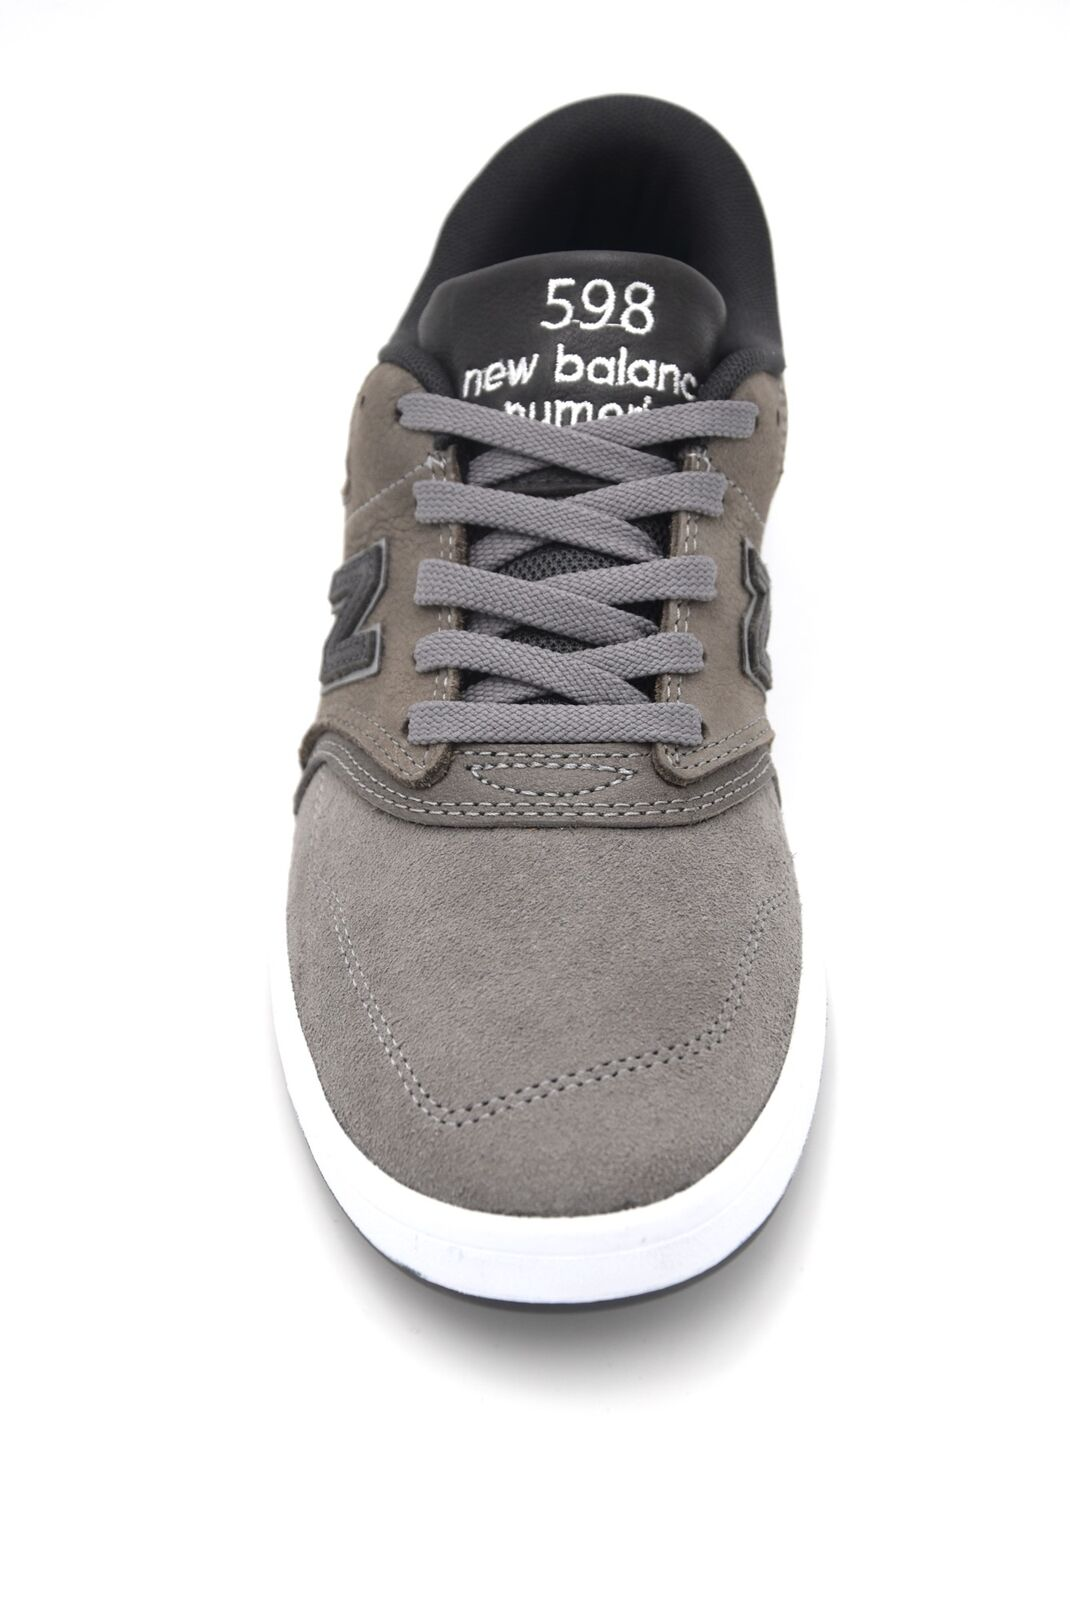 NEW BALANCE MAN FREE TIME CASUAL SNEAKER SHOES NM598GGG SUEDE LEATHER CODE ART. NM598GGG SHOES 3c5e18